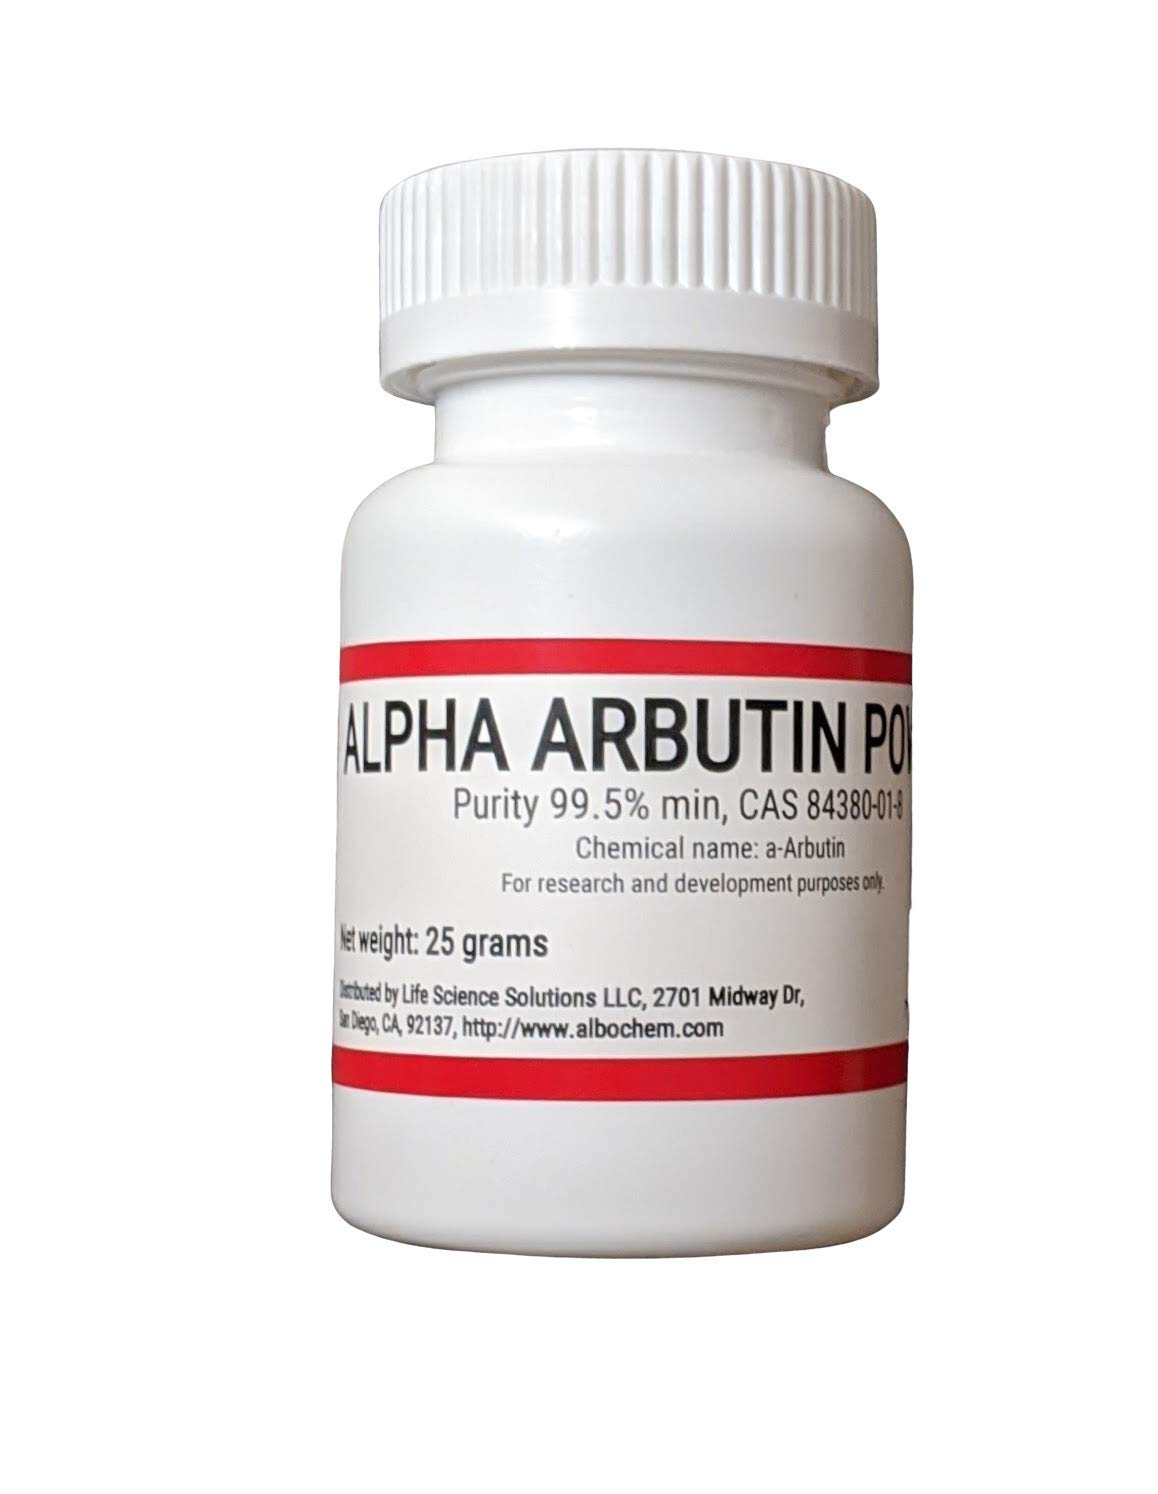 Pure Alpha-Arbutin Powder, 25 grams